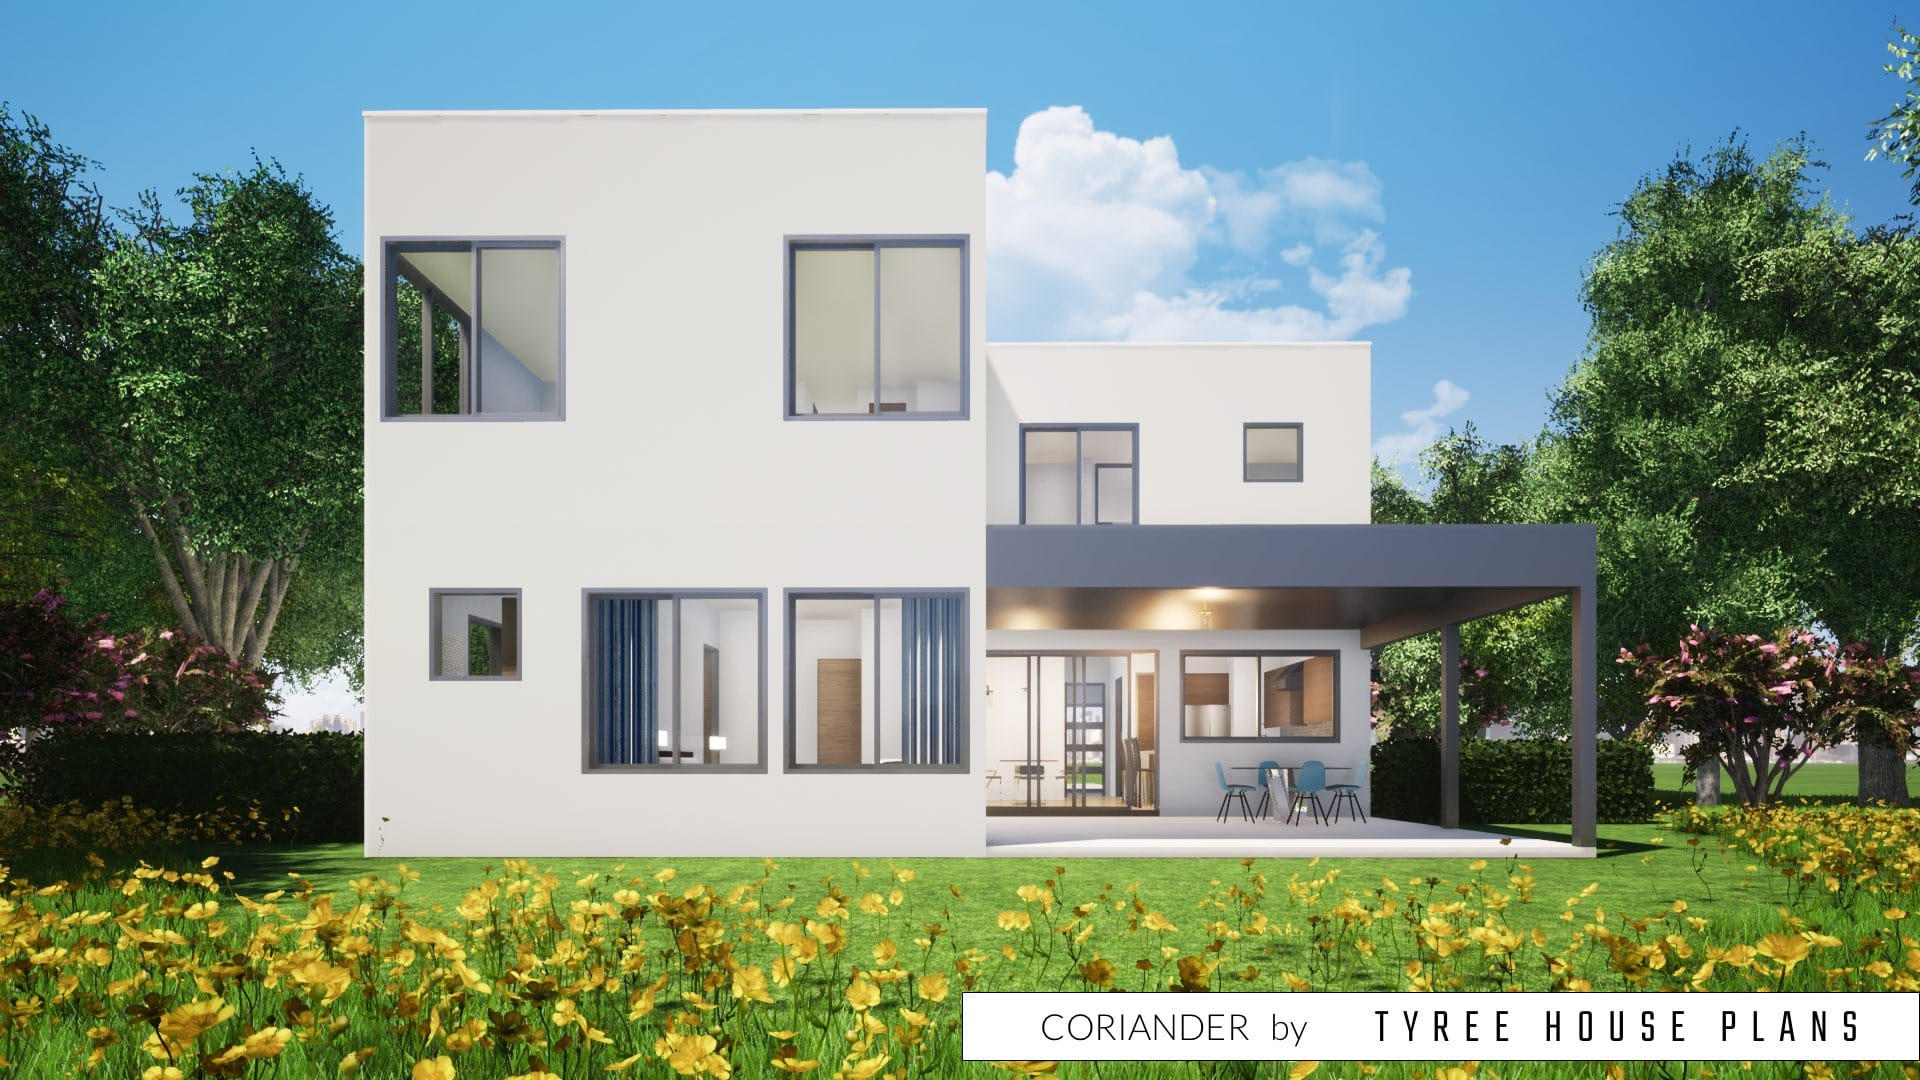 Coriander House Plan by Tyree House Plans